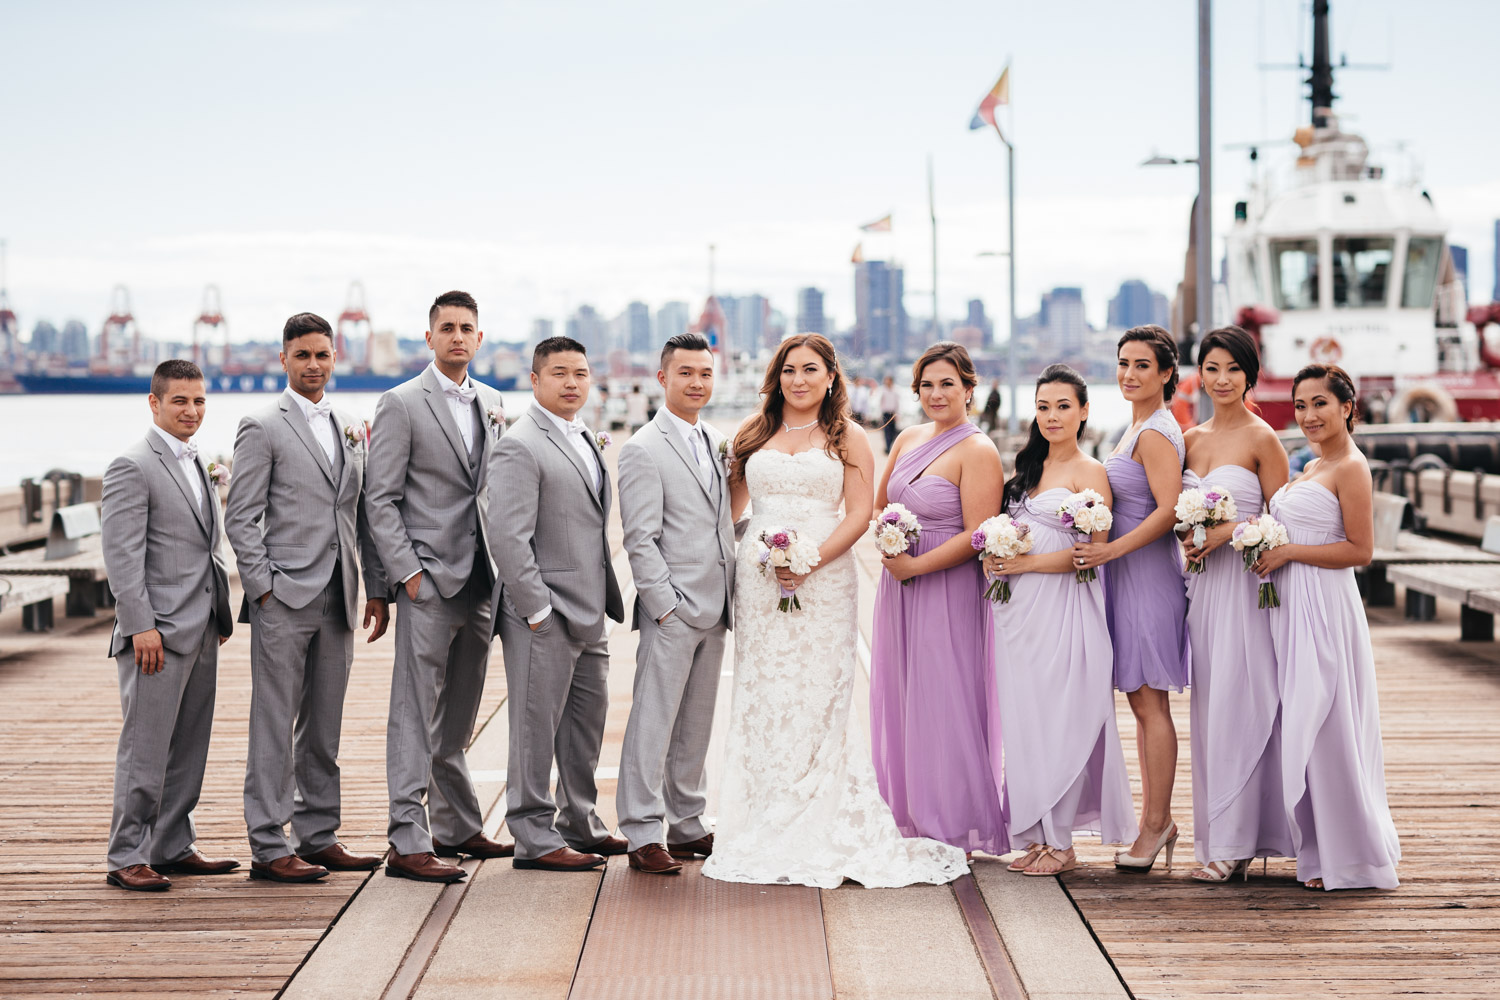 Burrard Dry Dock wedding photography portraits bridal party in North Vancouver BC